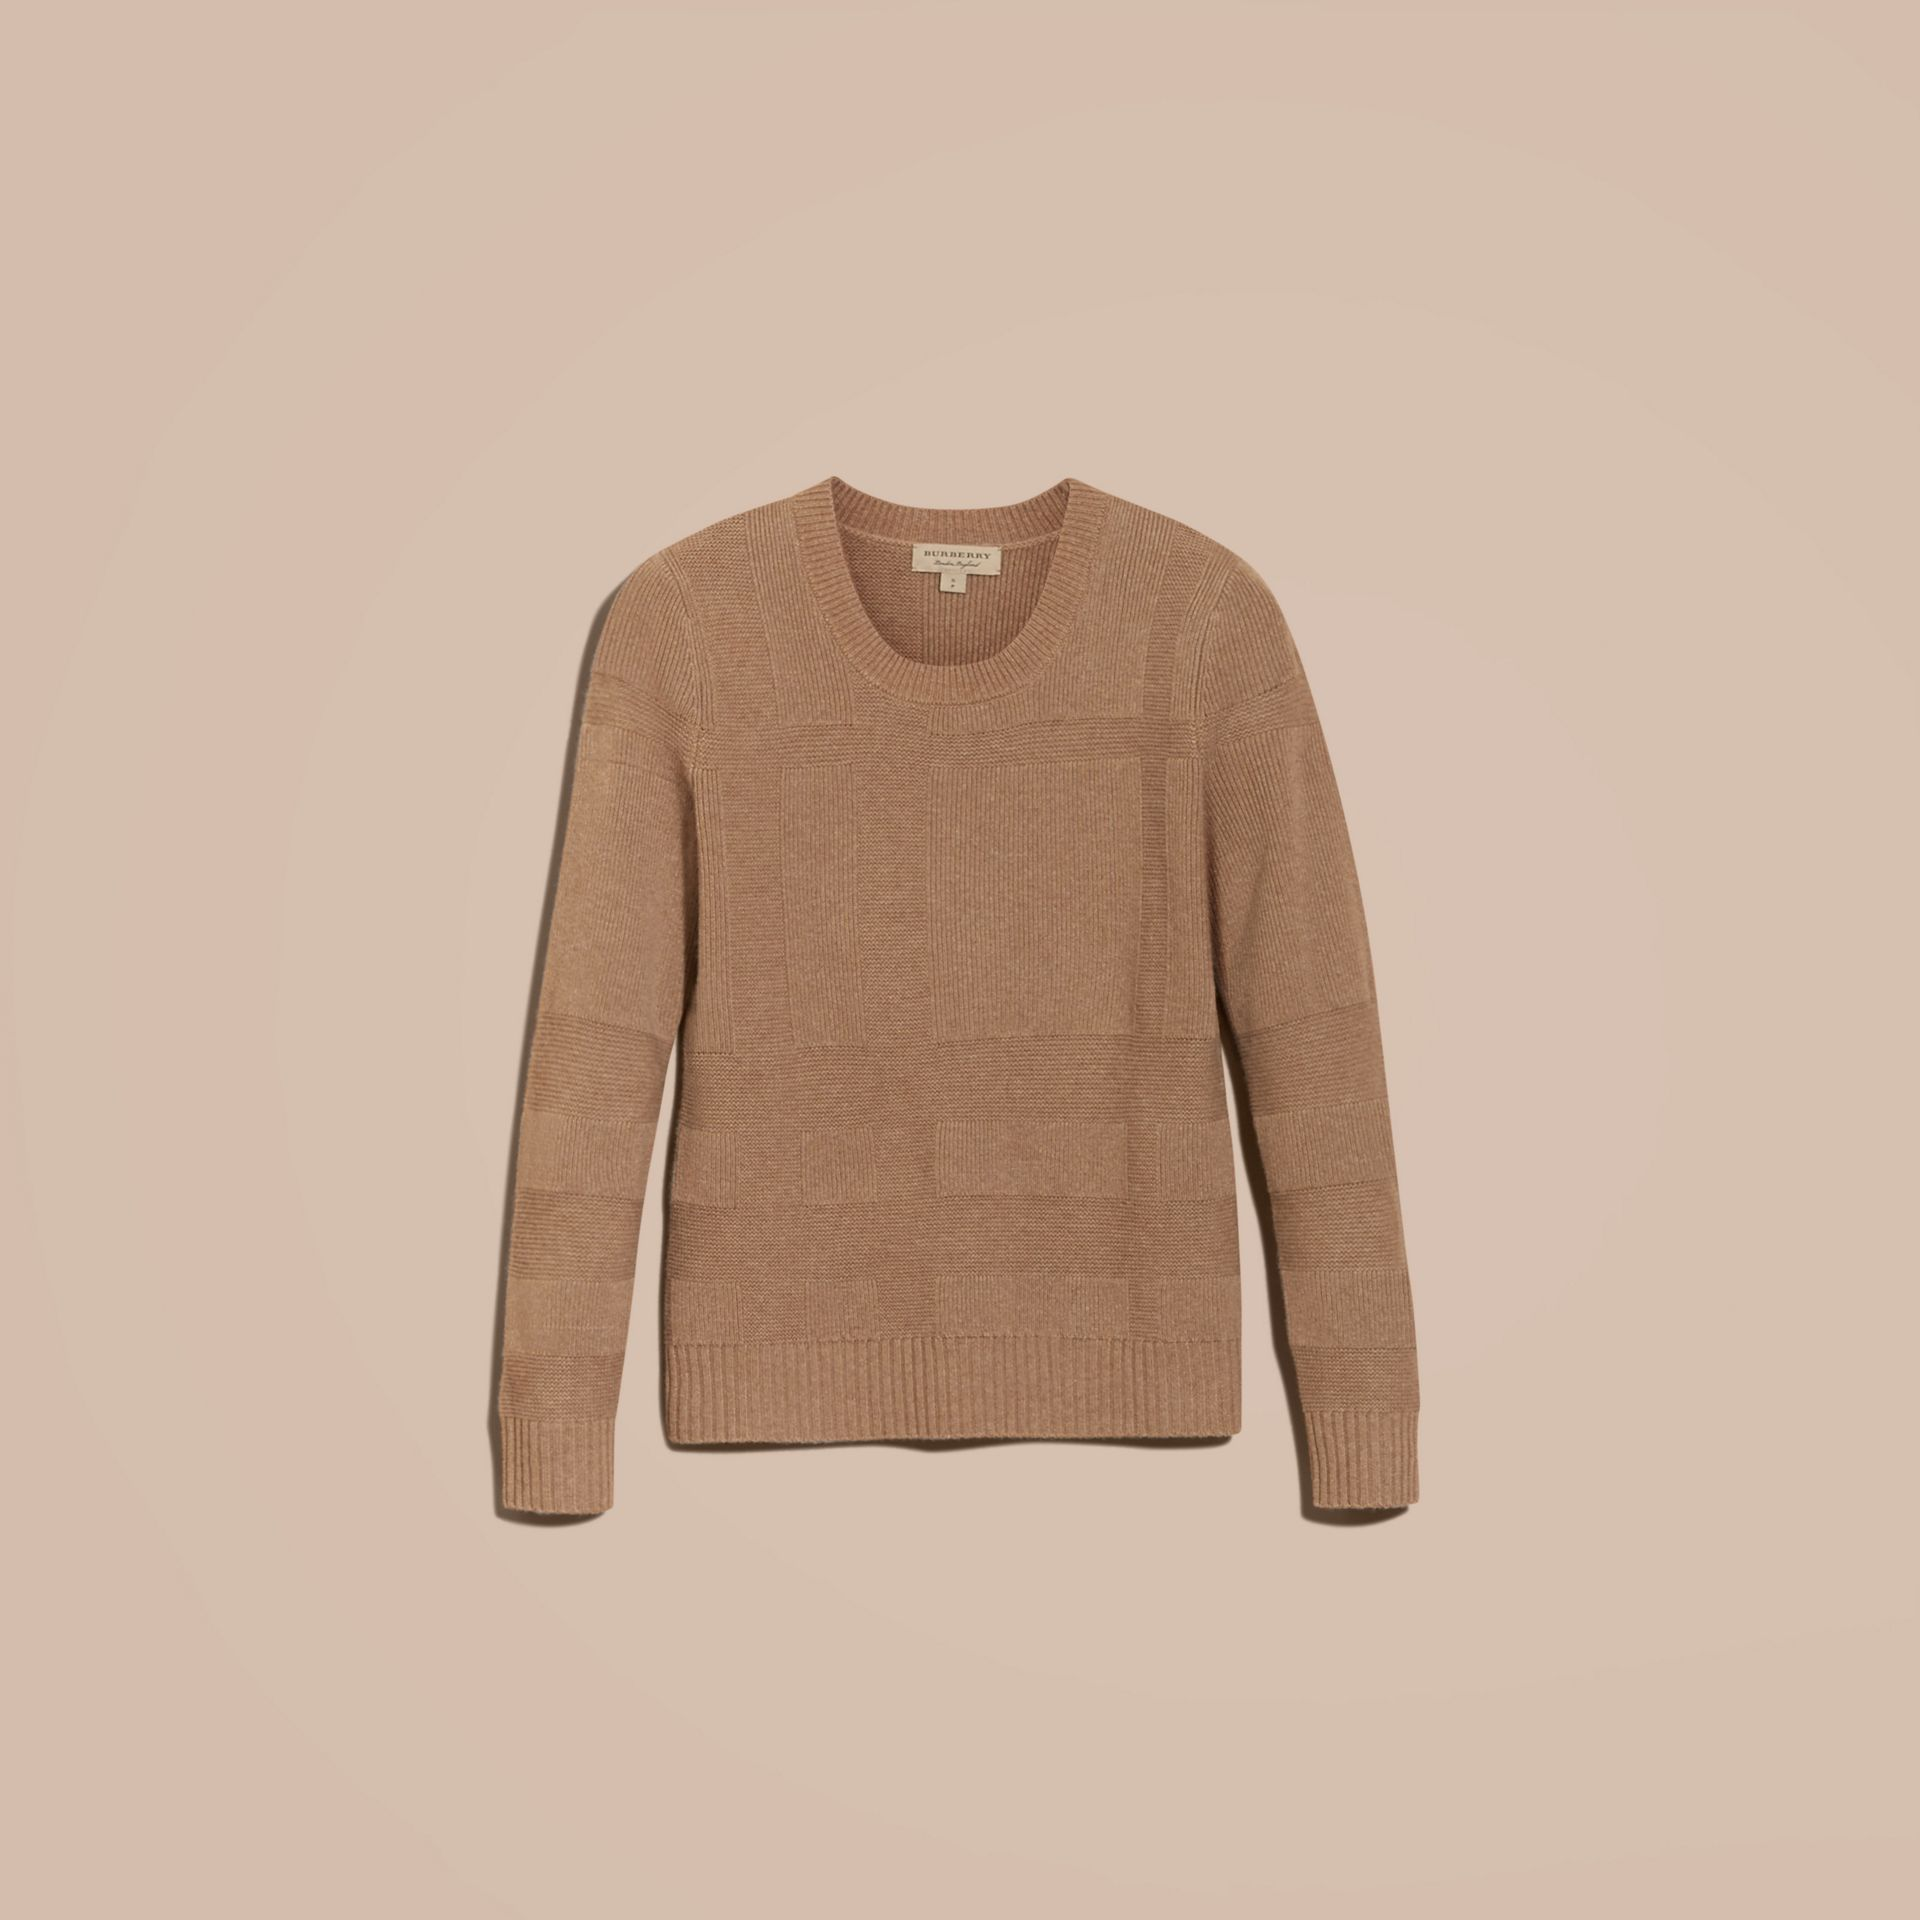 Camel Check-knit Wool Cashmere Sweater Camel - gallery image 4